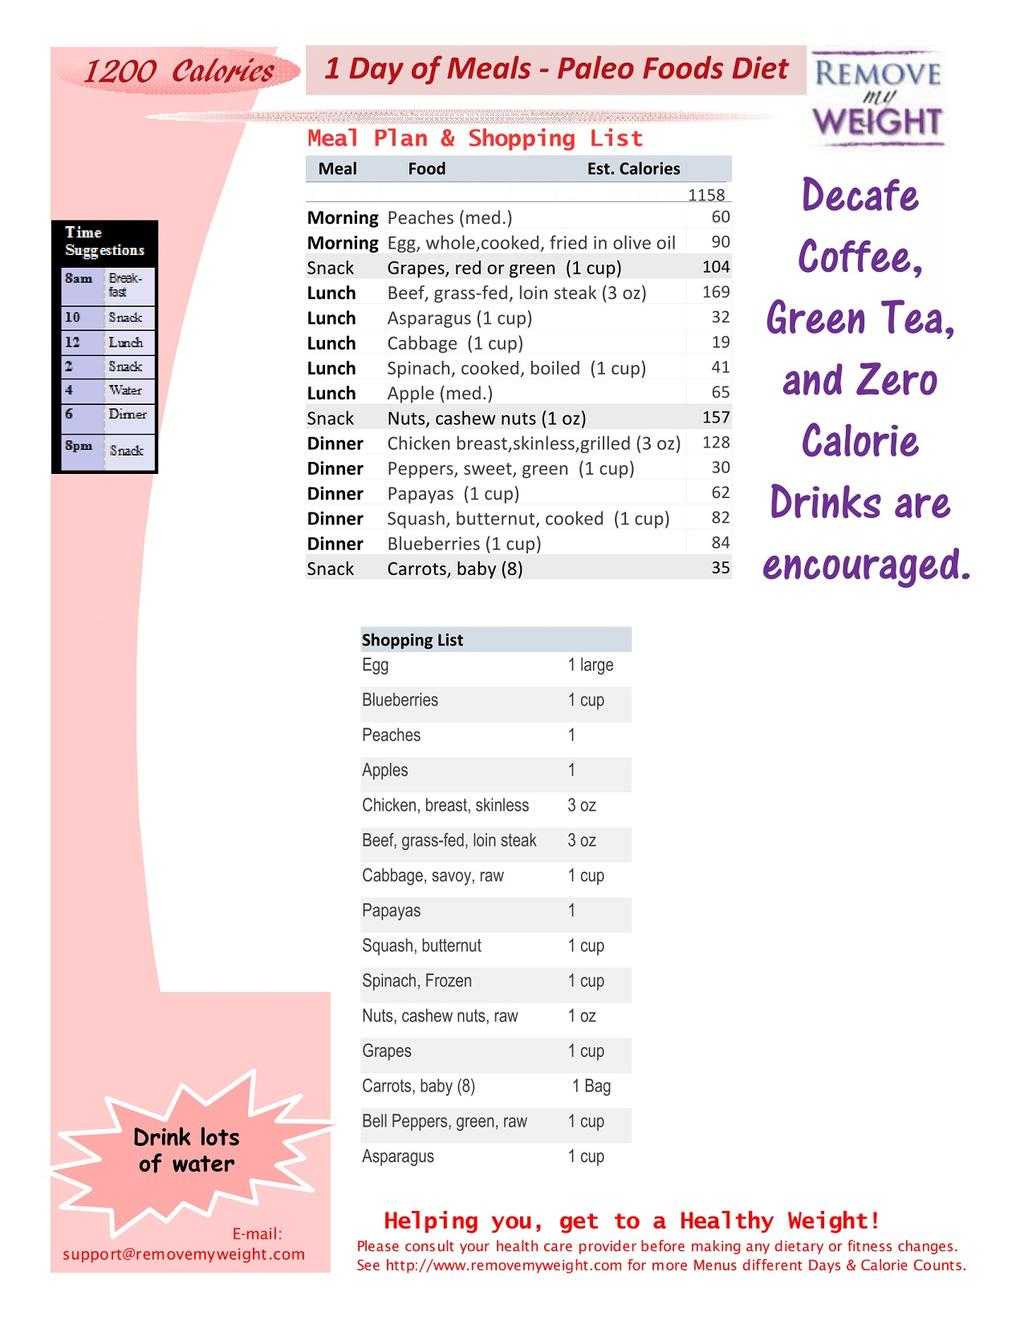 Printable 1 Day Meal Plan 1200 Calories a day Paleo Diet